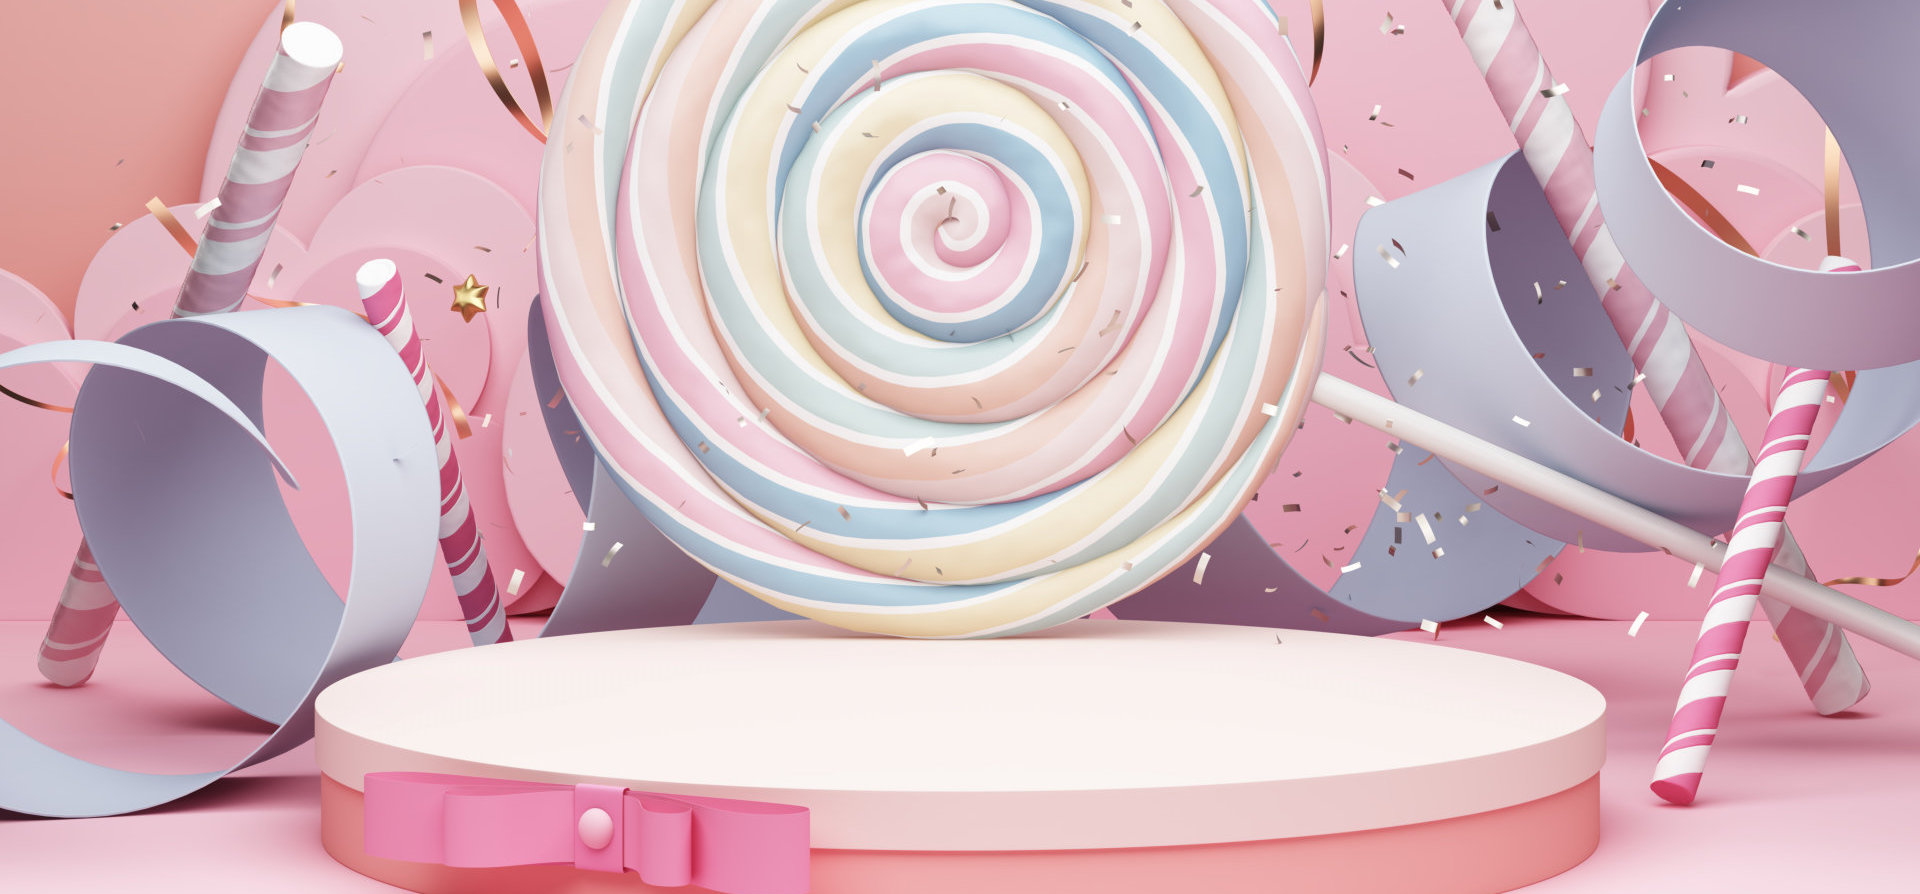 candy themed image